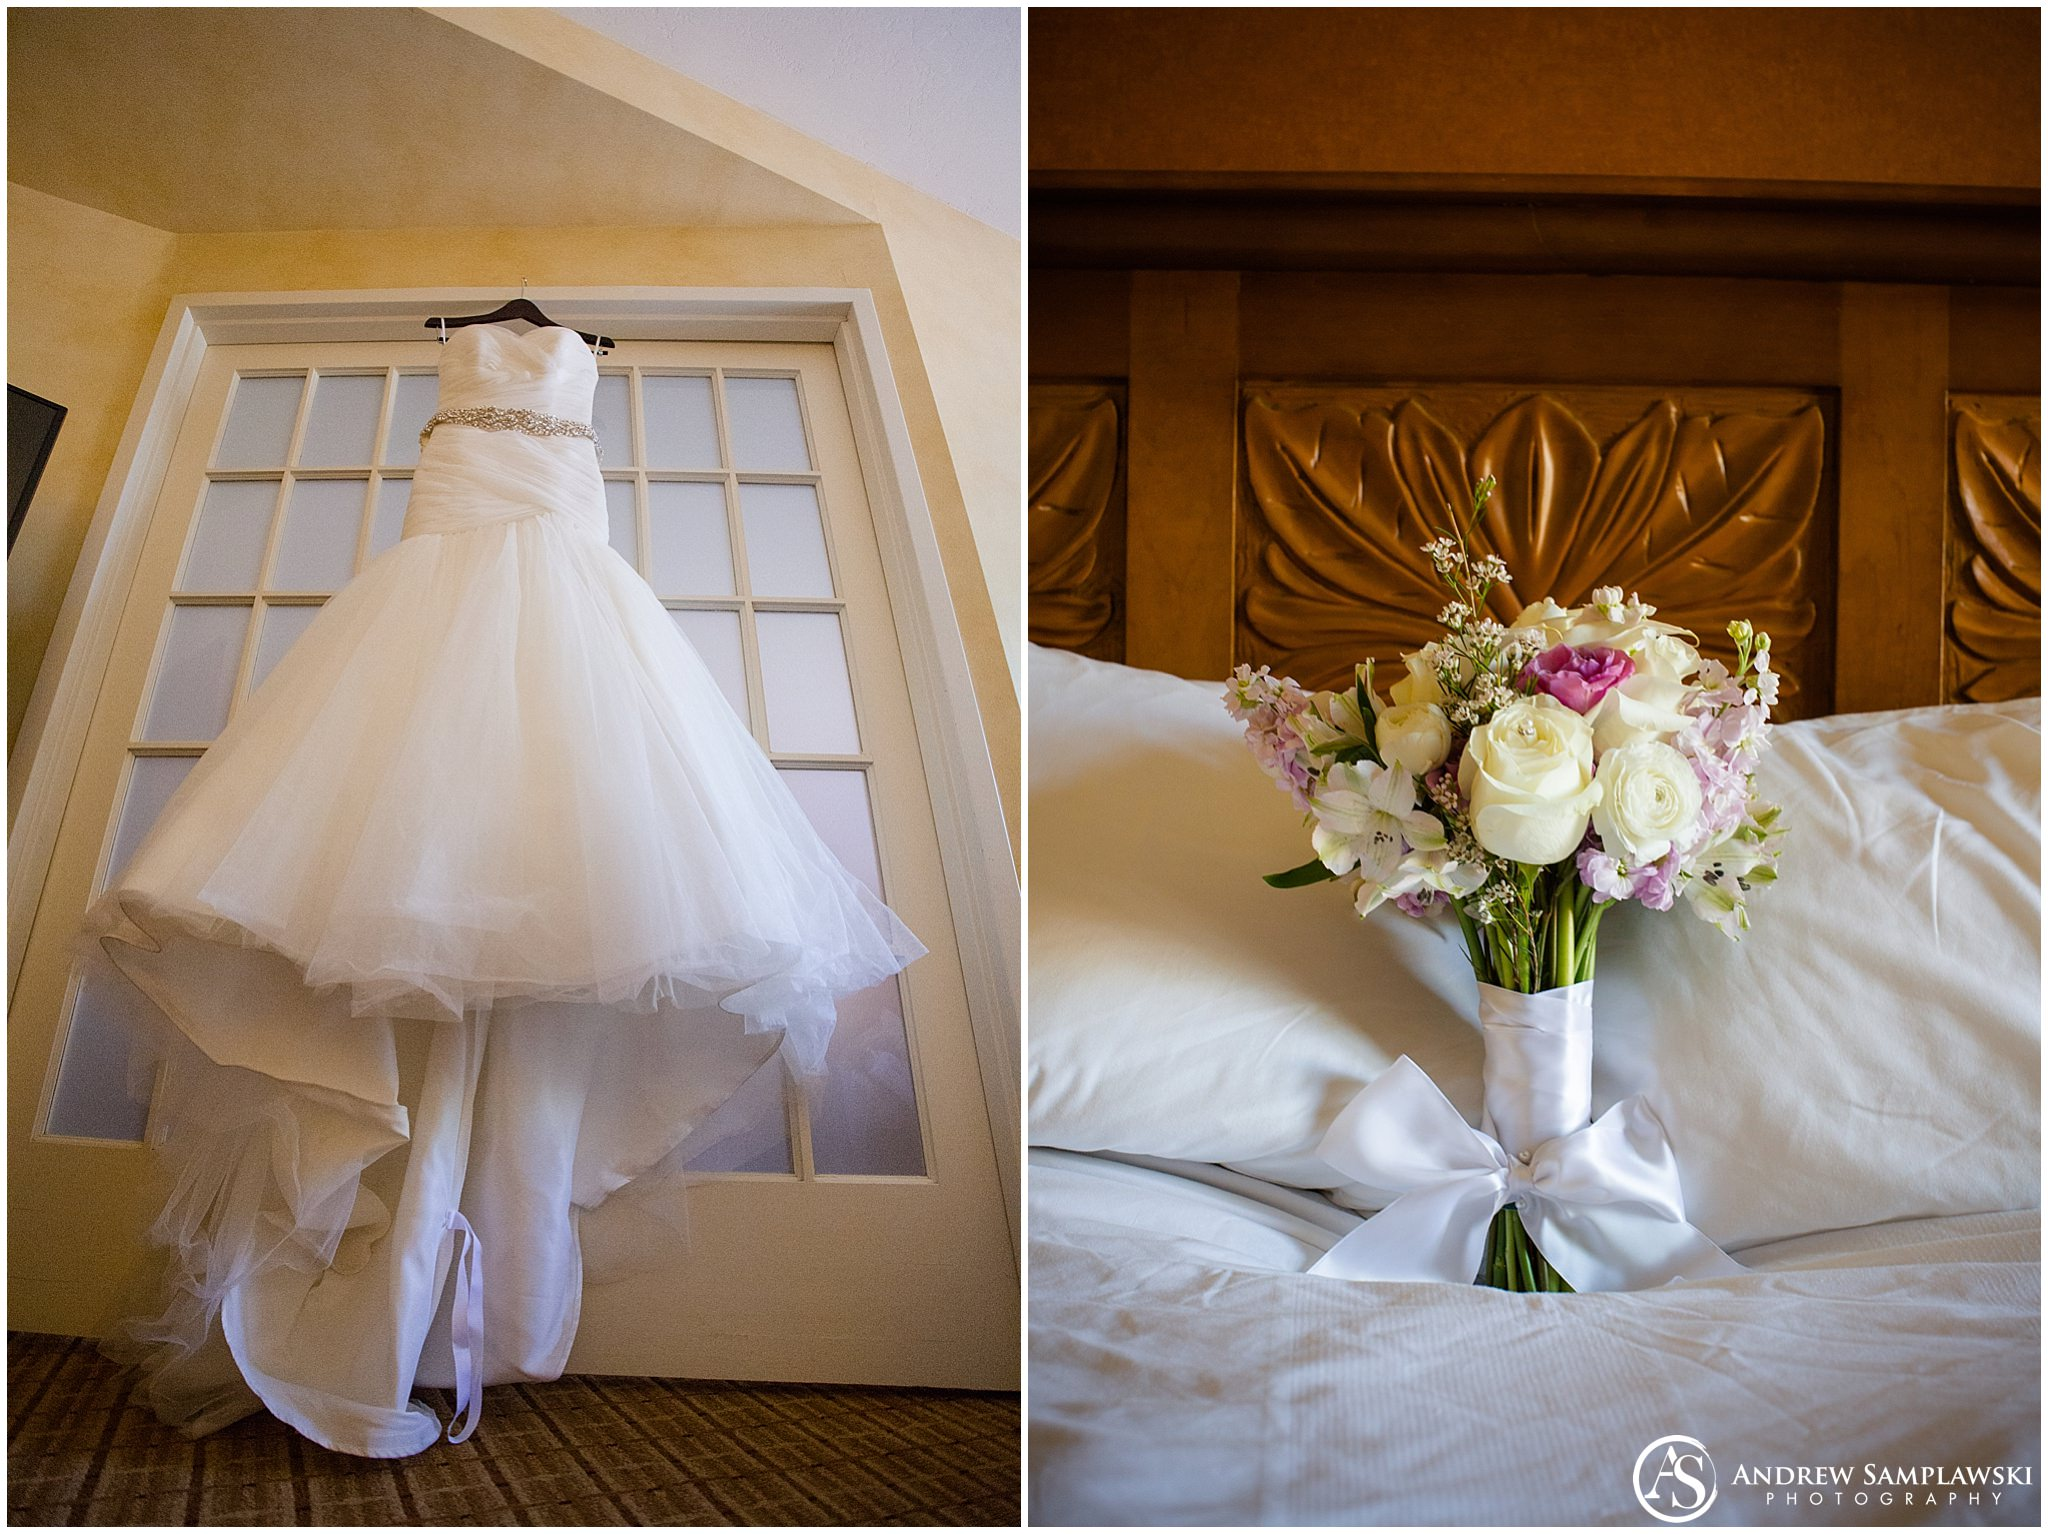 Marriott McDowell Mountains Arizona Wedding, Andrew Samplawski Photography